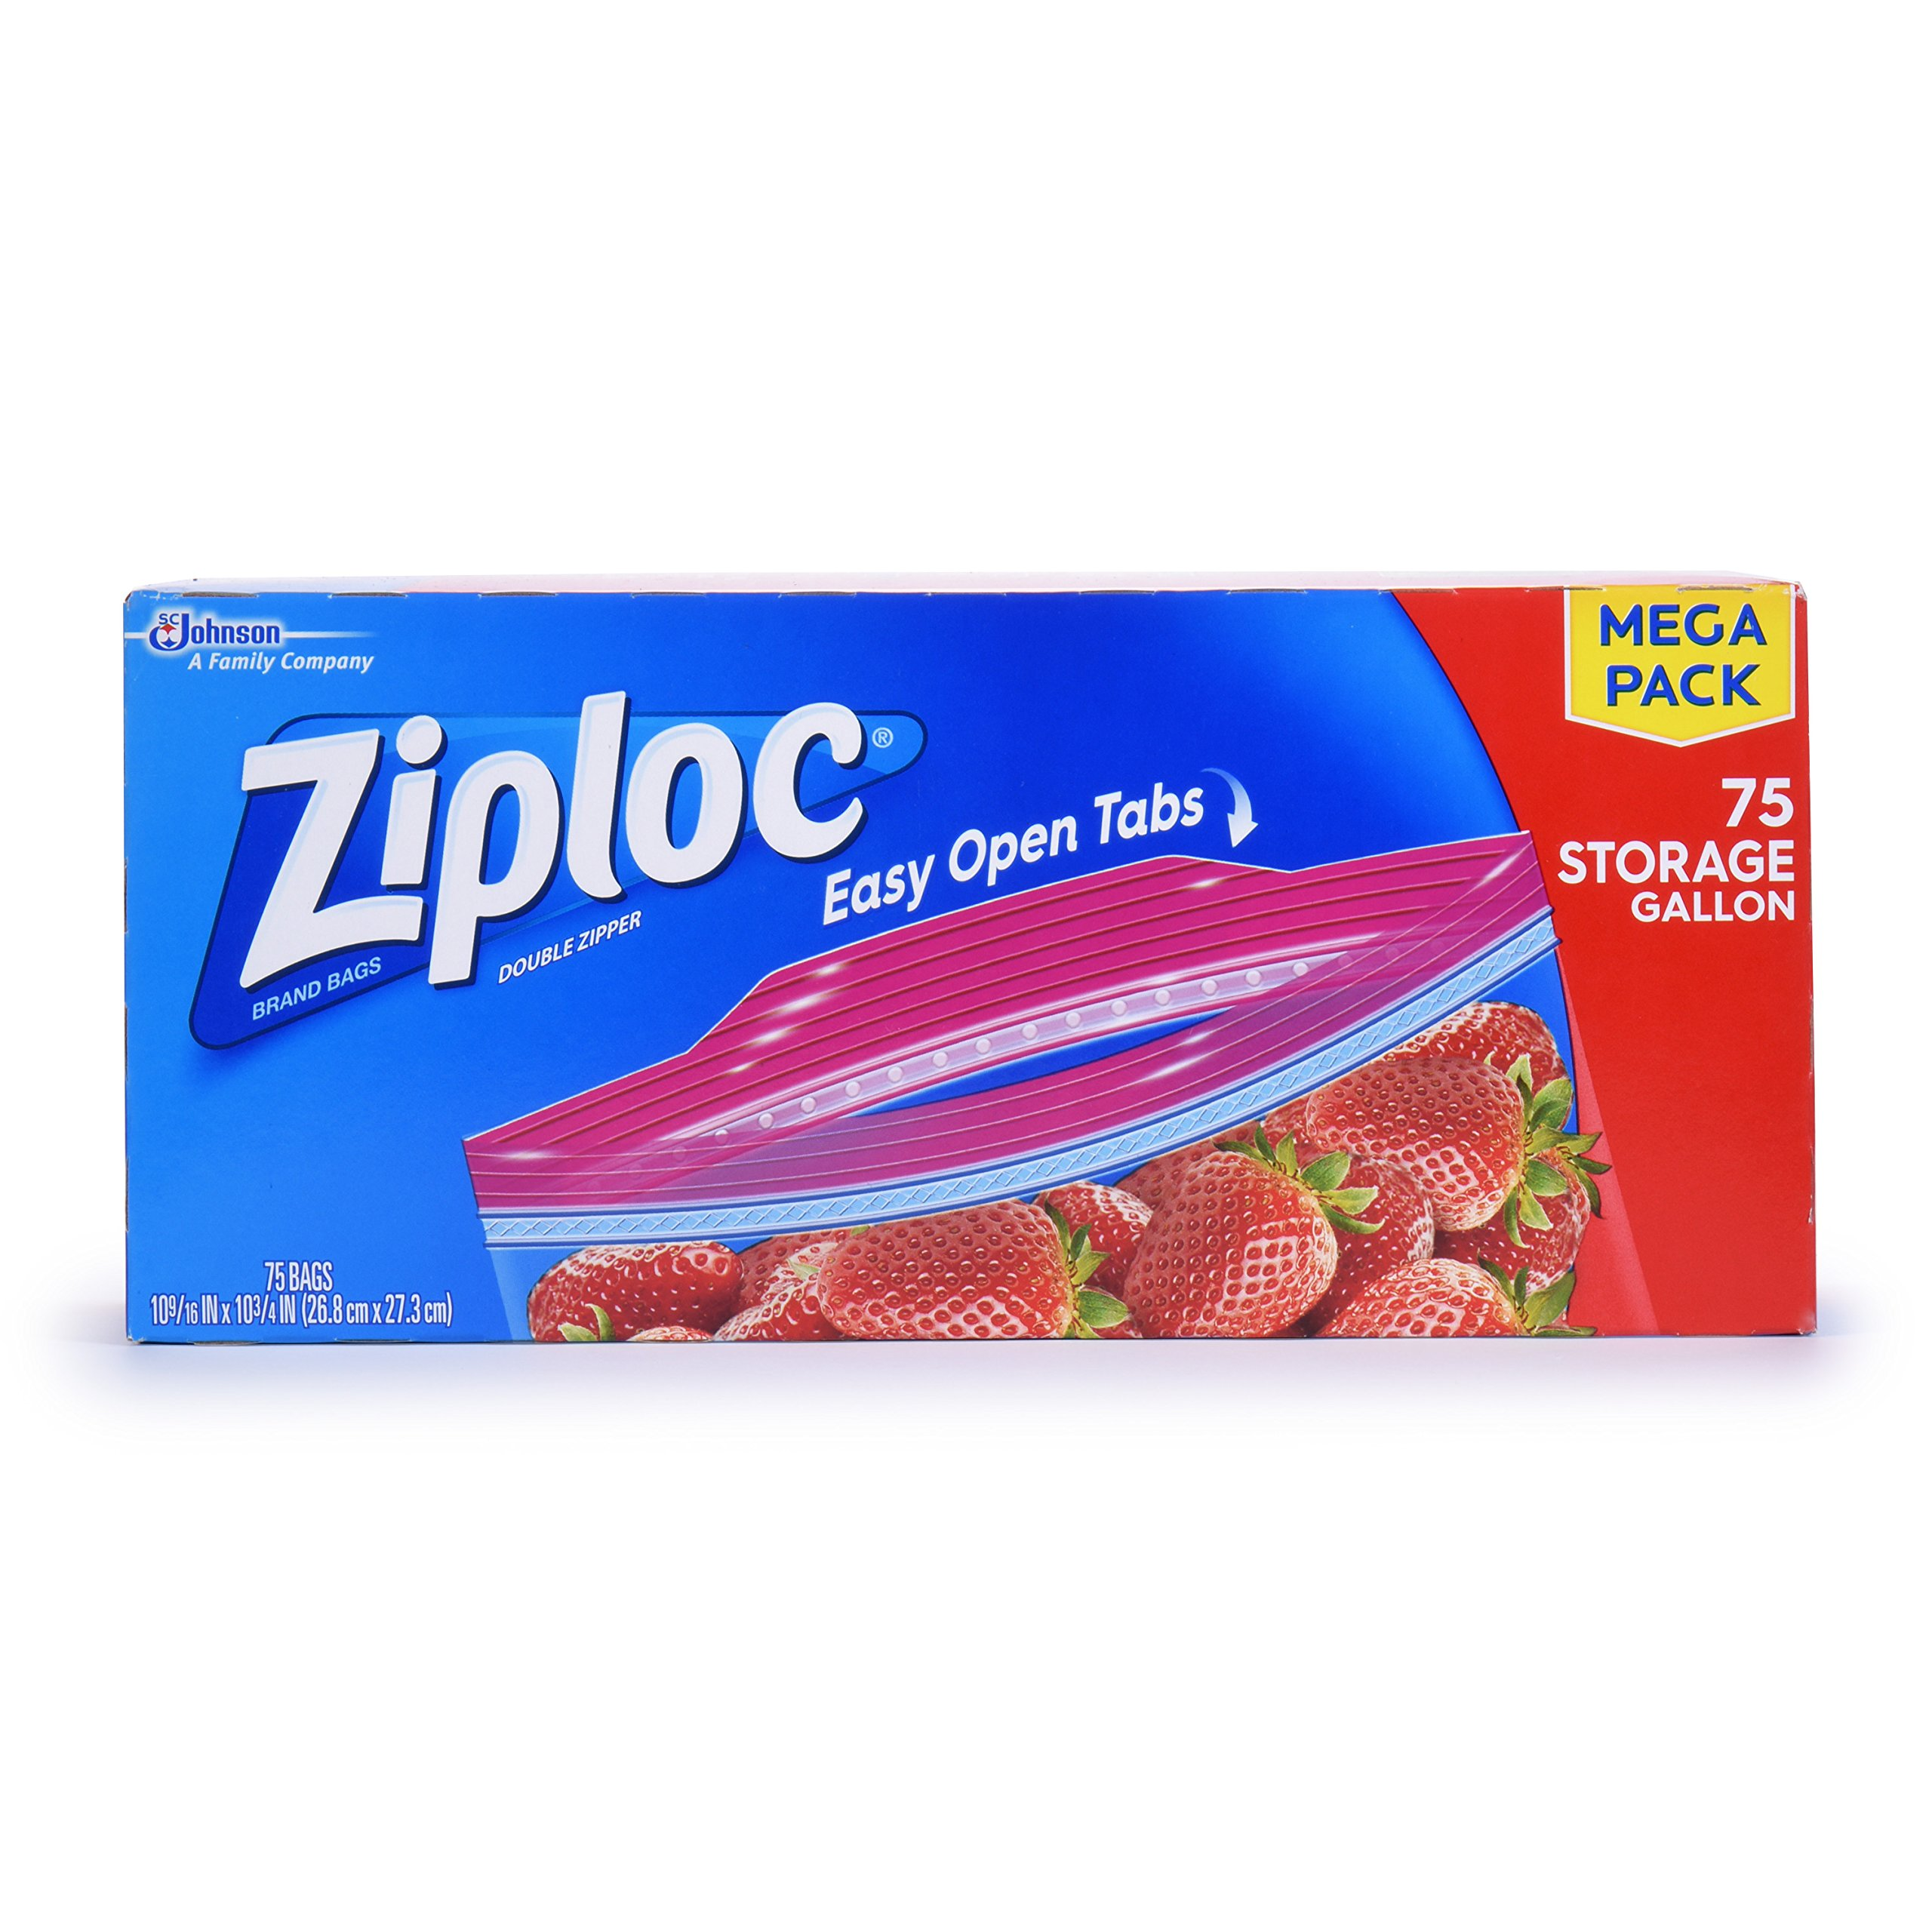 Amazon.com: Ziploc Storage Quart Bags, 80.0 Count: Health